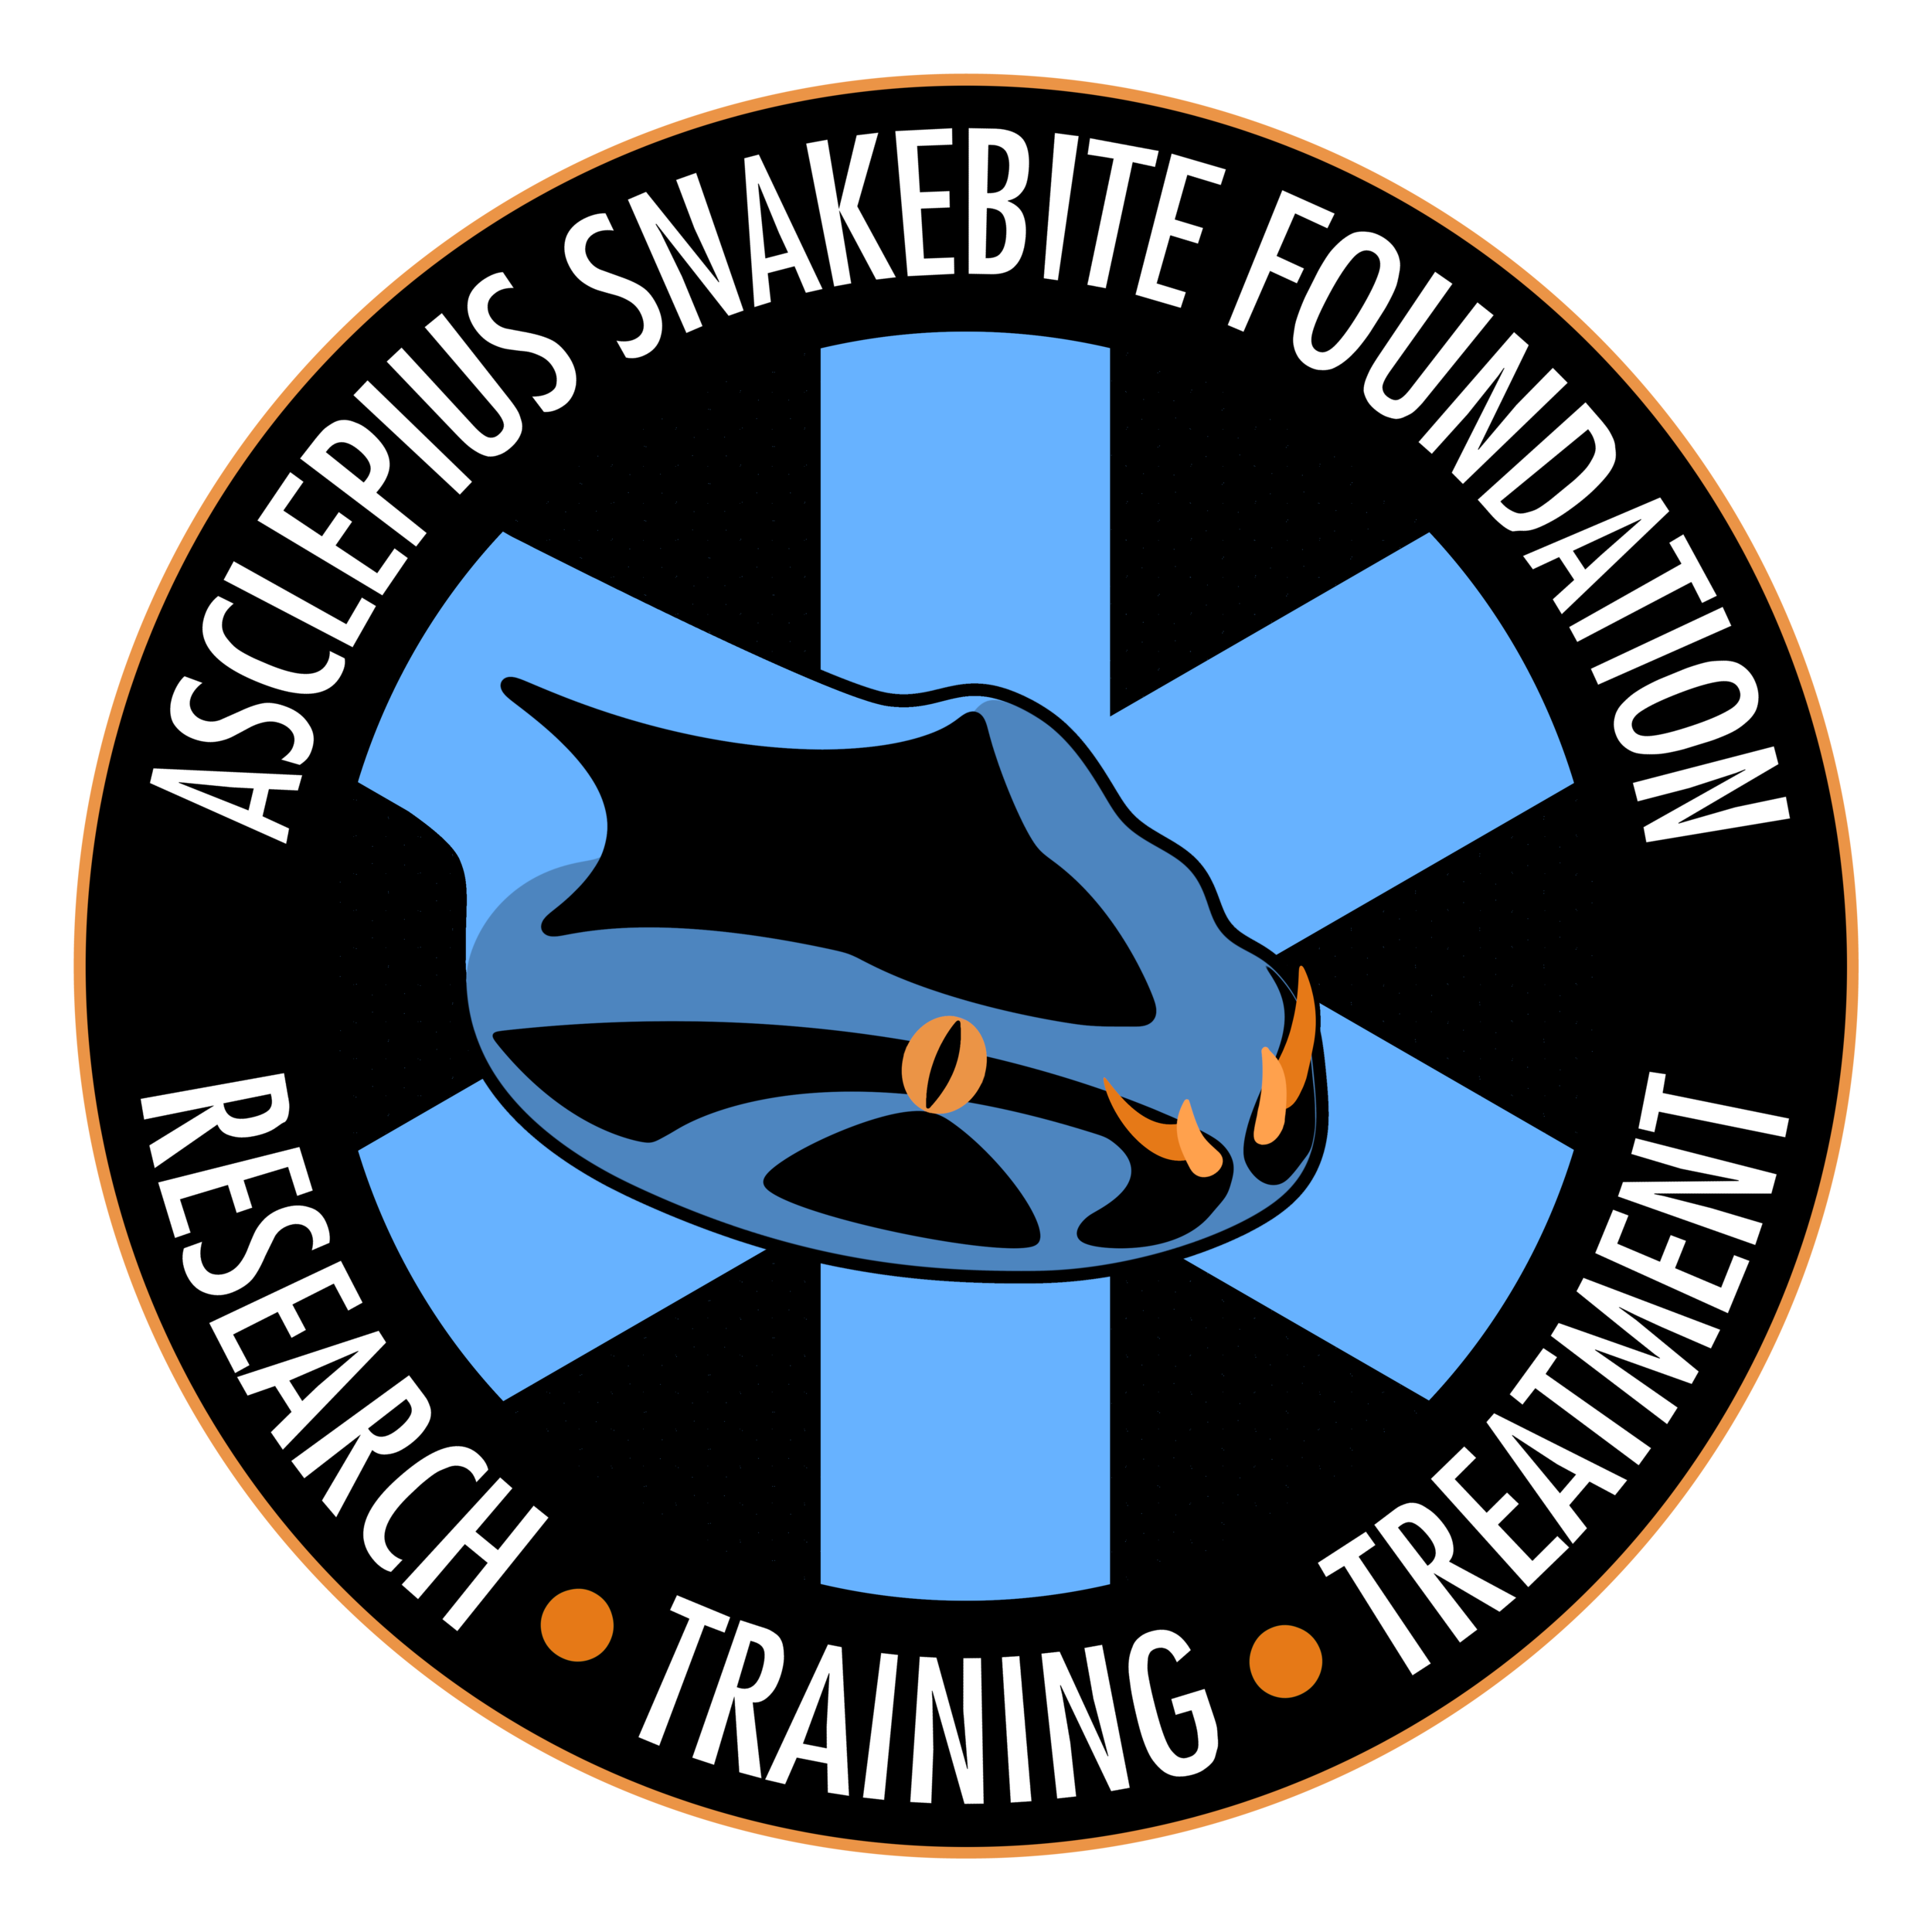 asf-logo-dark-background orange circle.png